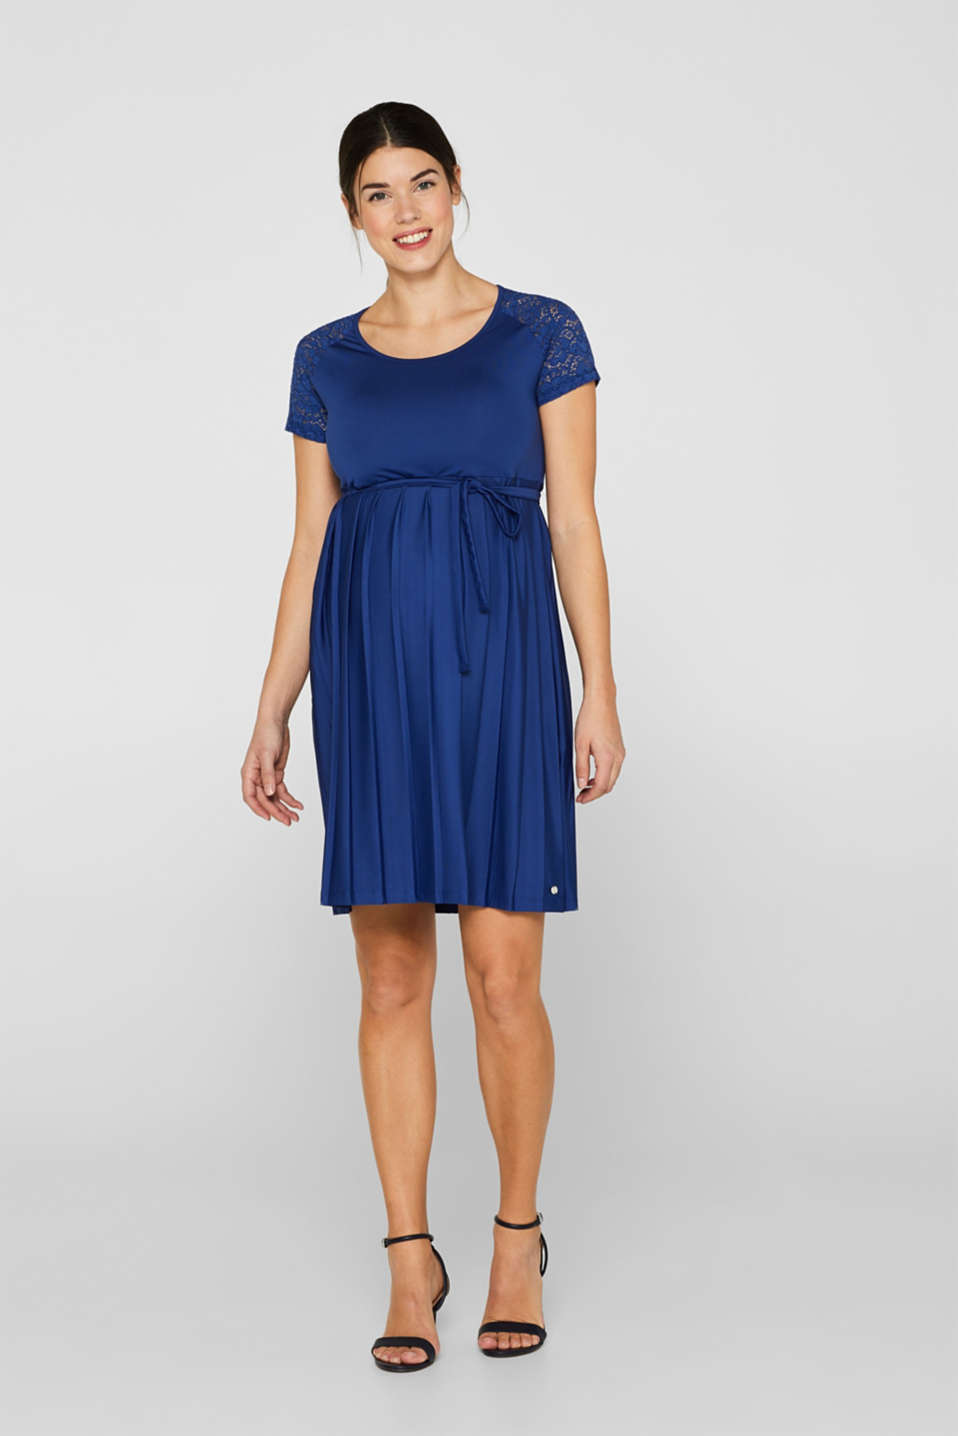 Lace-trimmed dress with a pleated skirt, LCDARK BLUE, detail image number 1